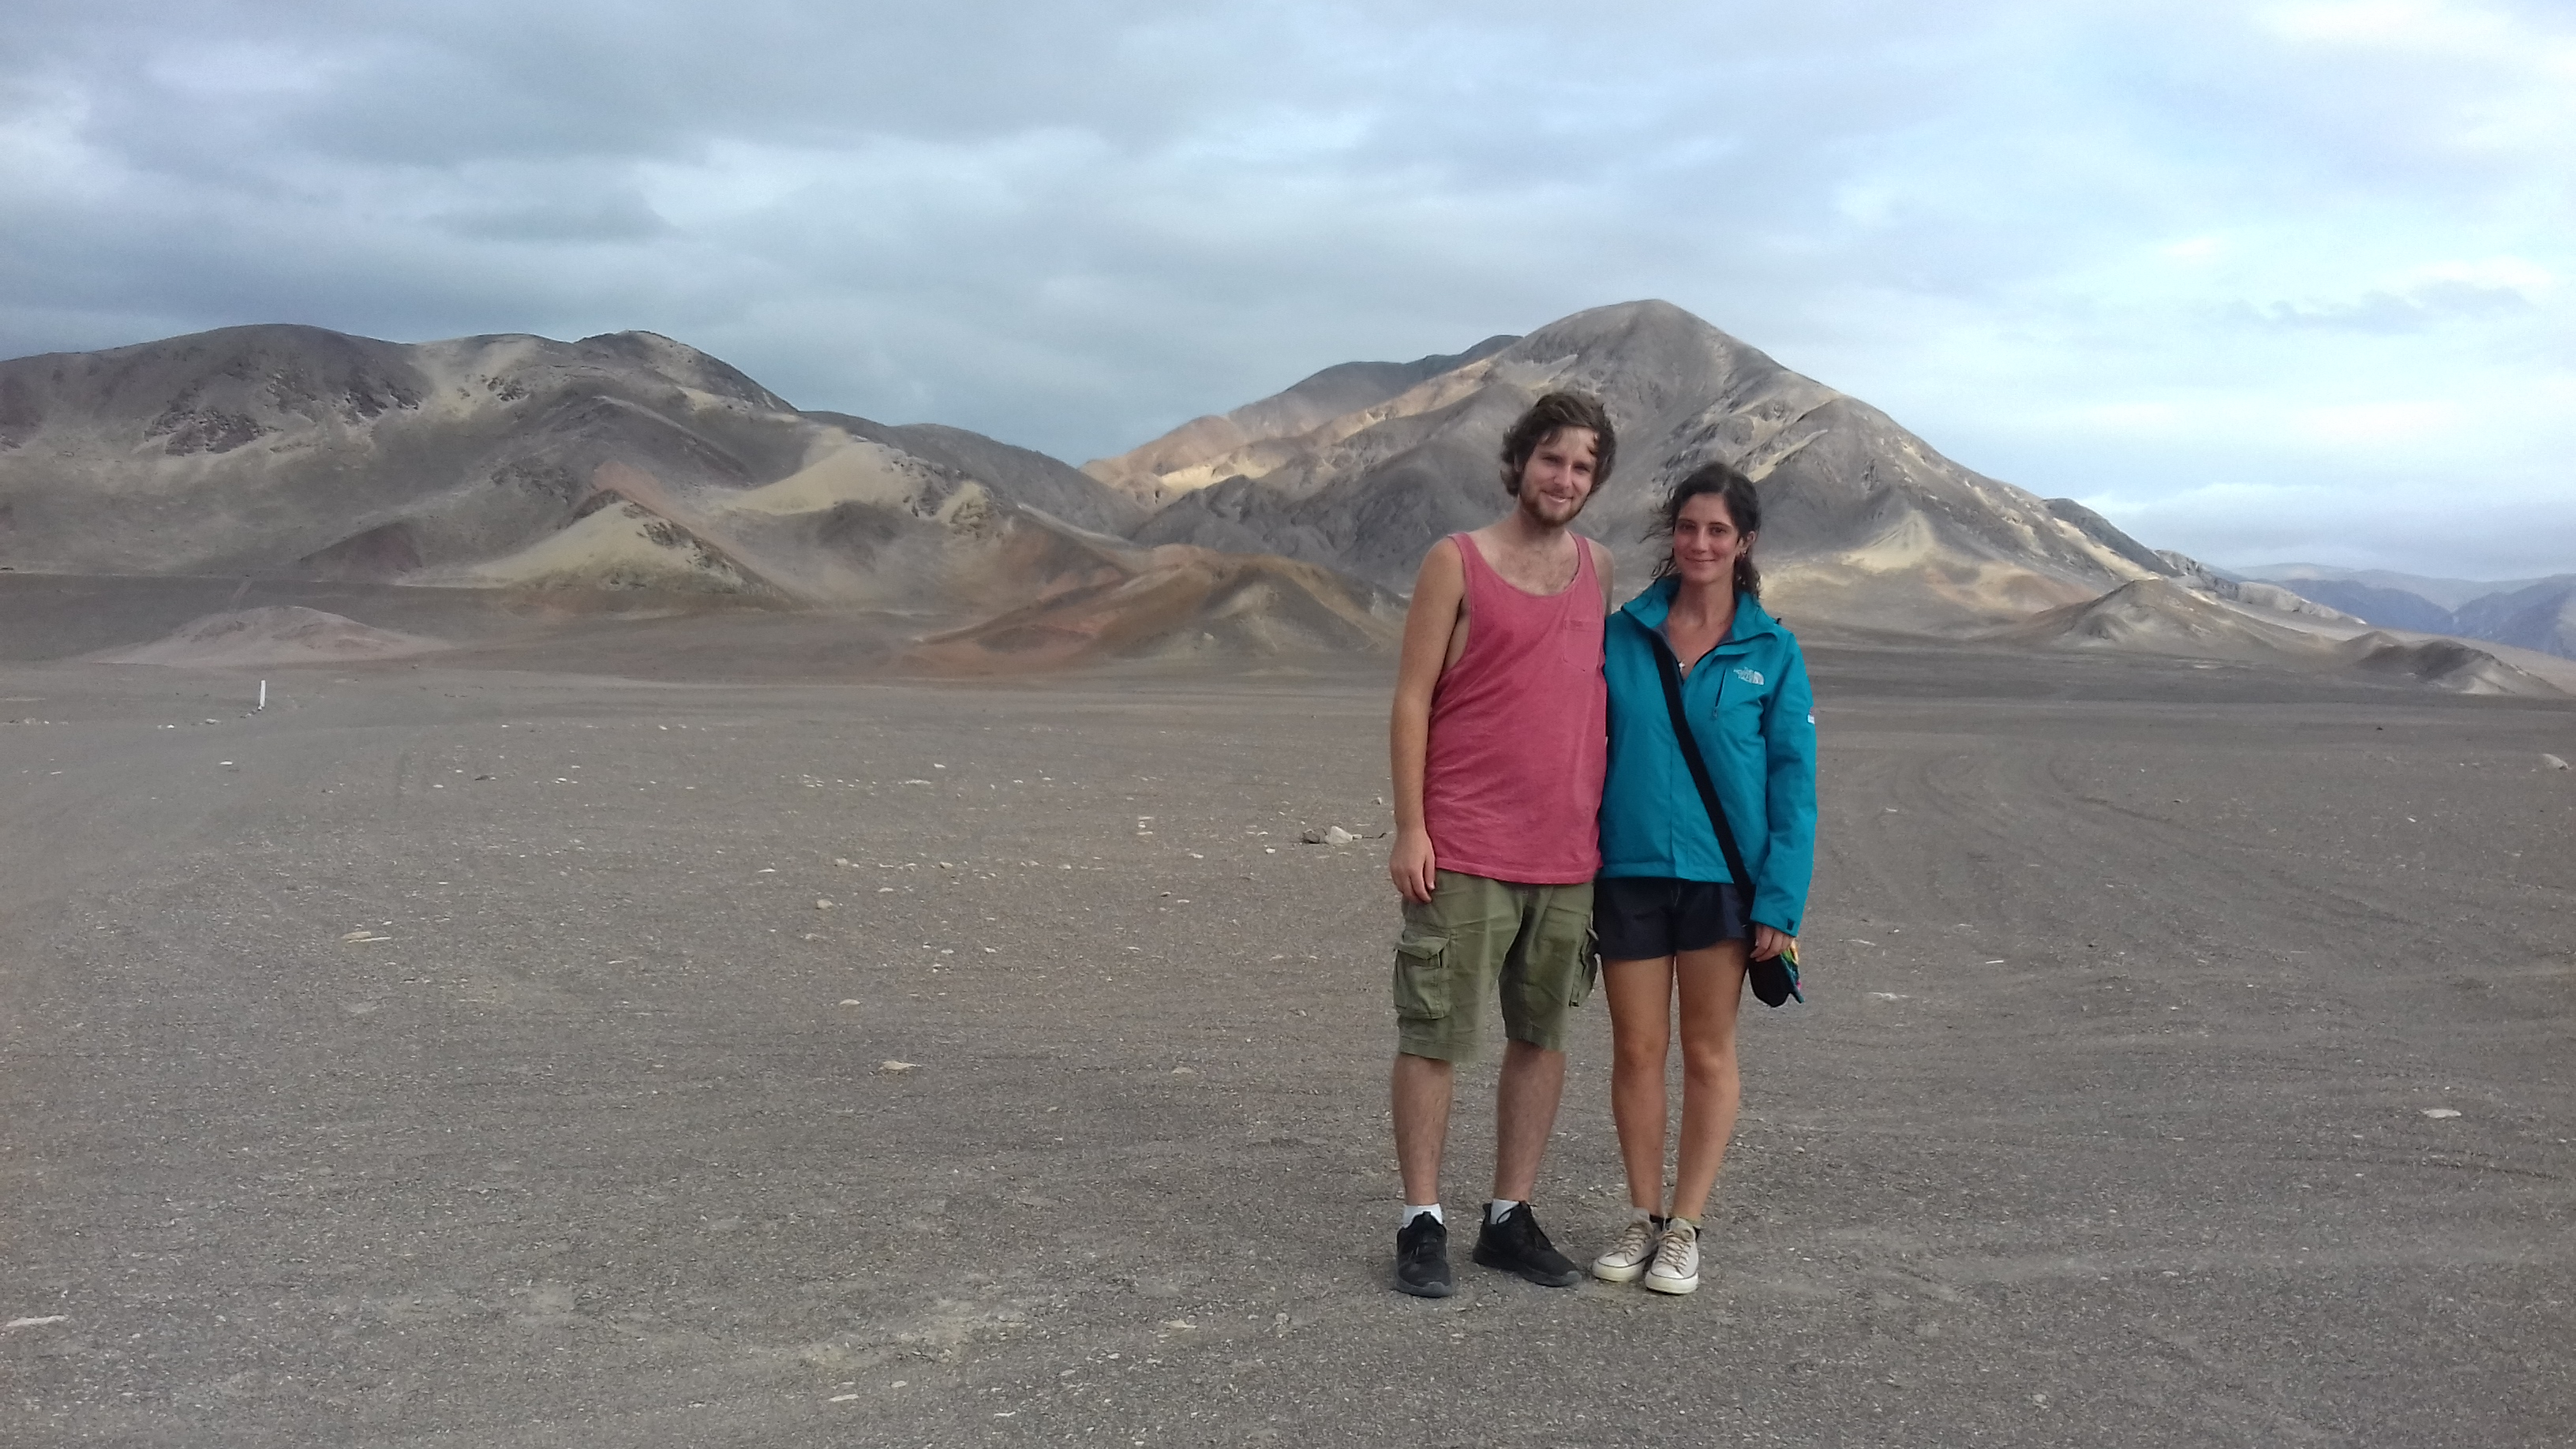 two people standing in front of a mountain